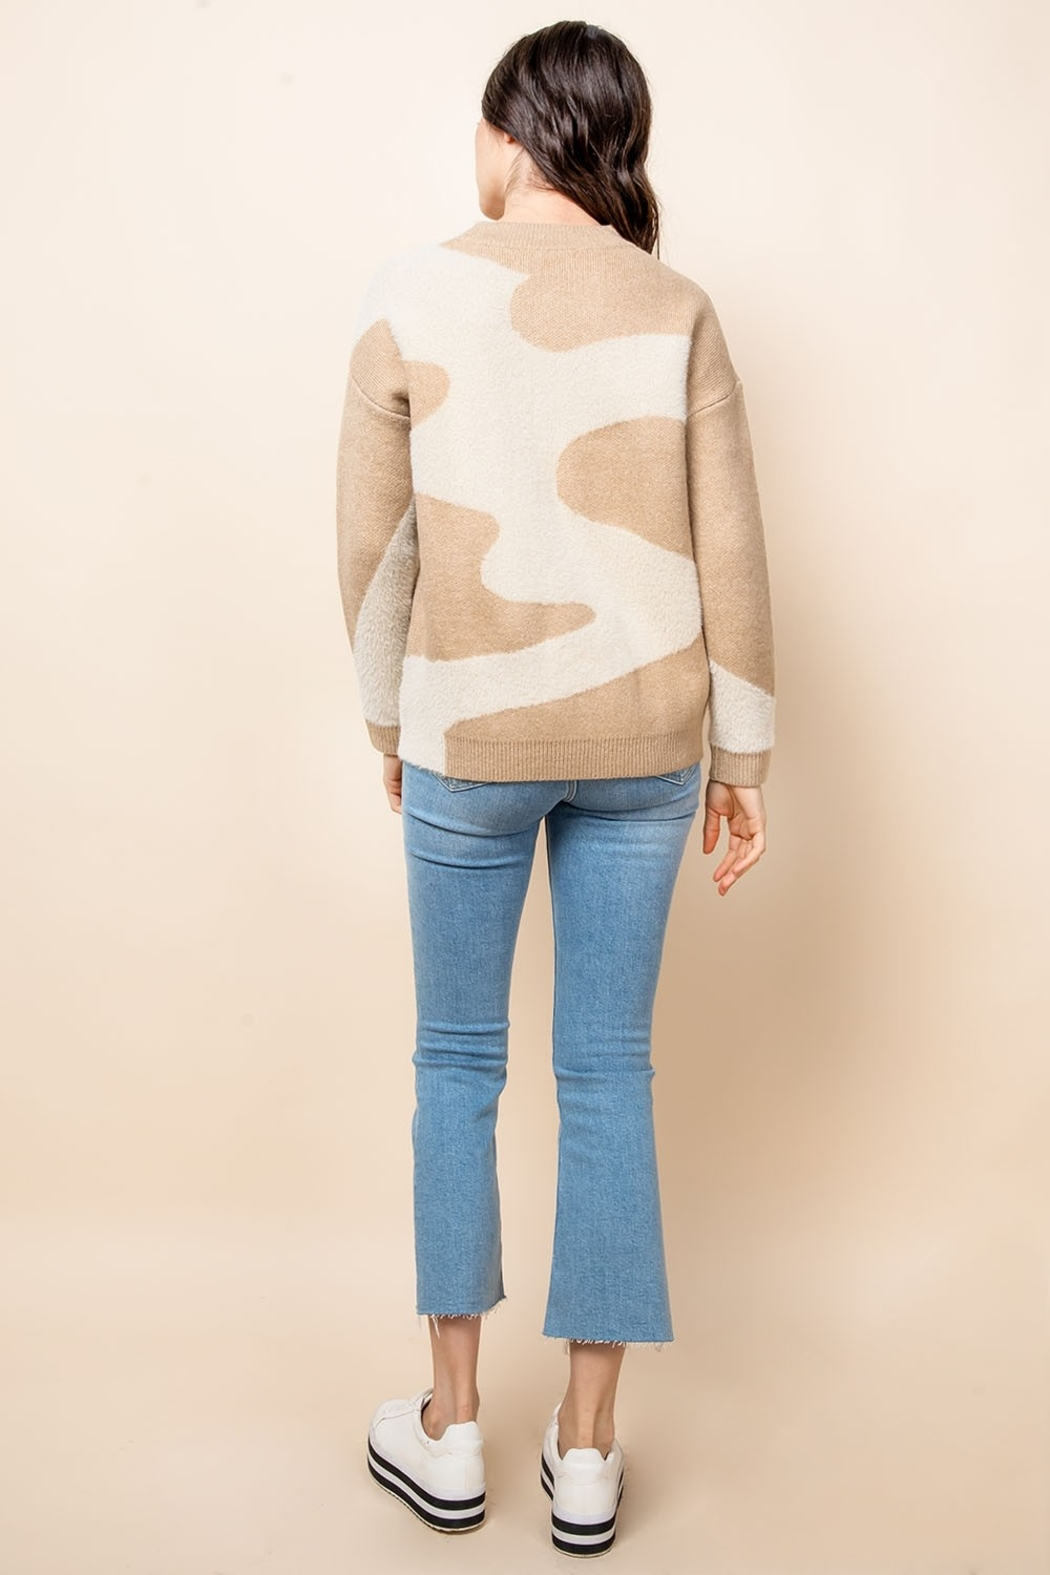 THML Clothing Mohair Patterned Sweater - Side Cropped Image